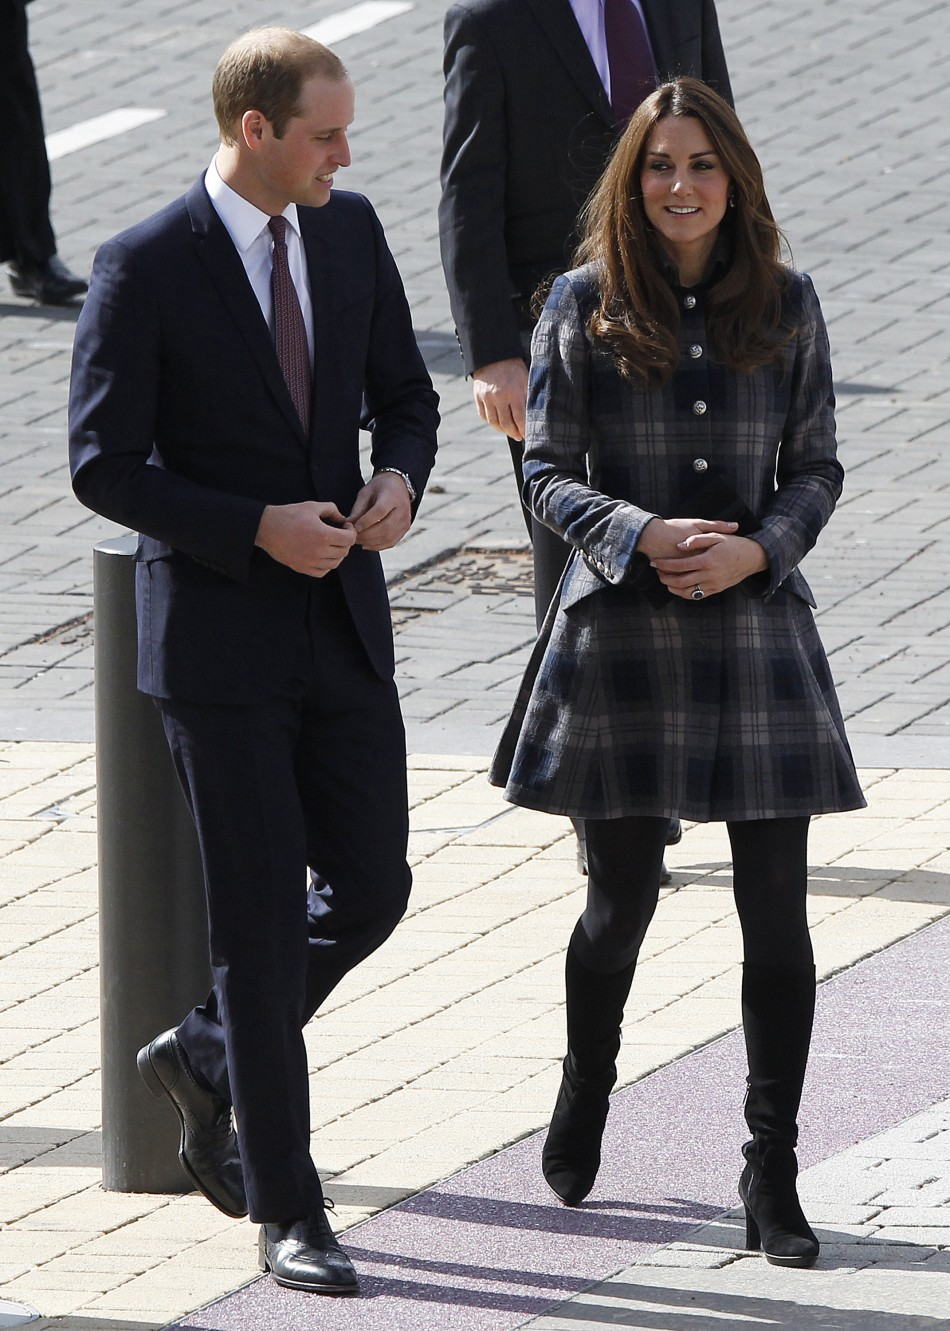 Britains Prince William and his wife Catherine, Duchess of Cambridge arrive for their visit to the Emirates Arena in Glasgow, Scotland April 4, 2013